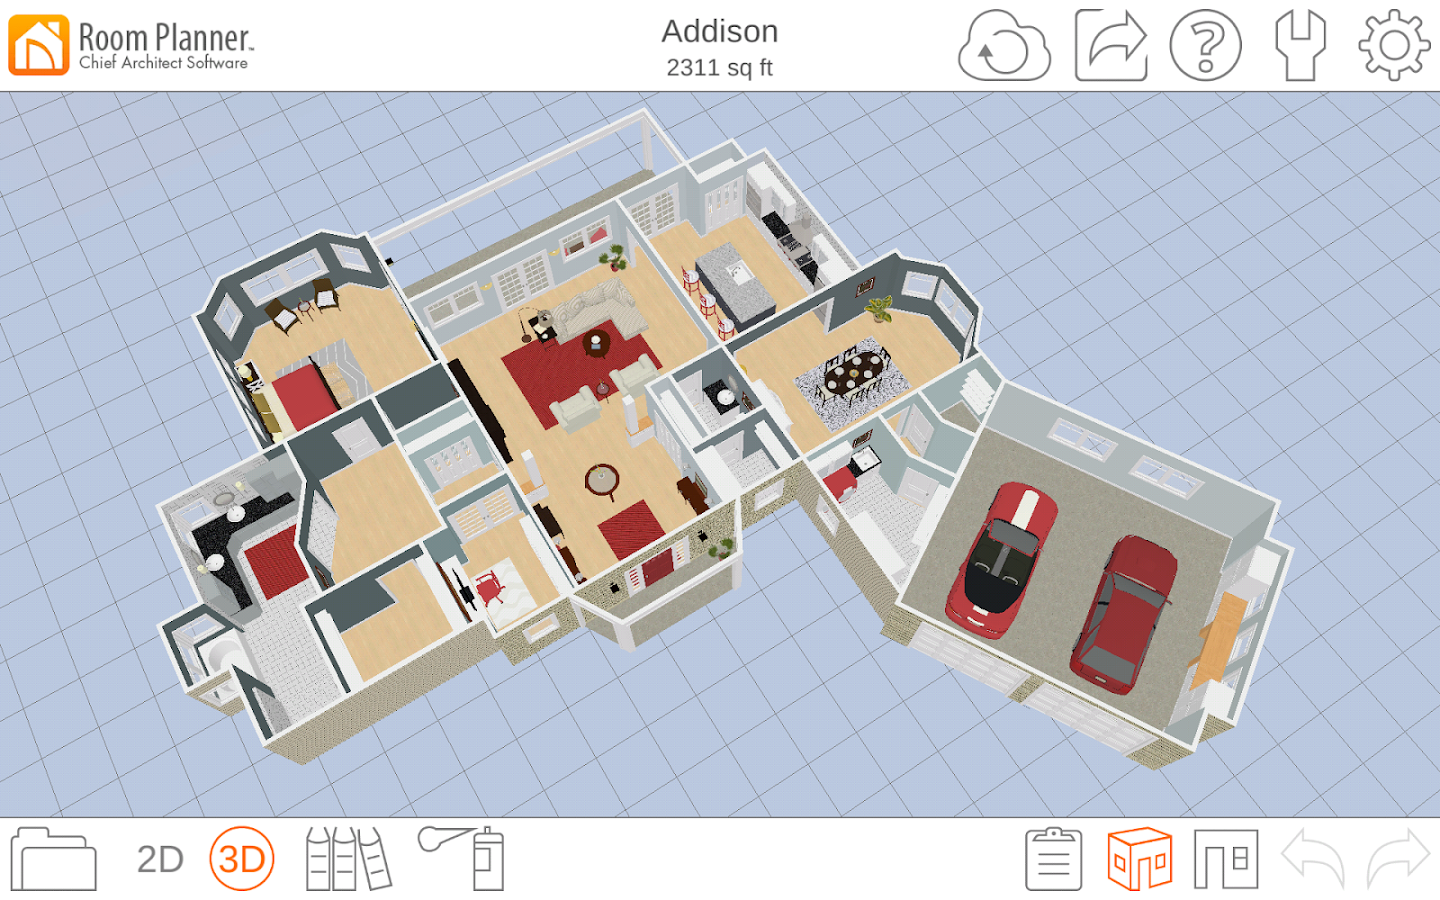 Room planner home design android apps on google play for Space planning software